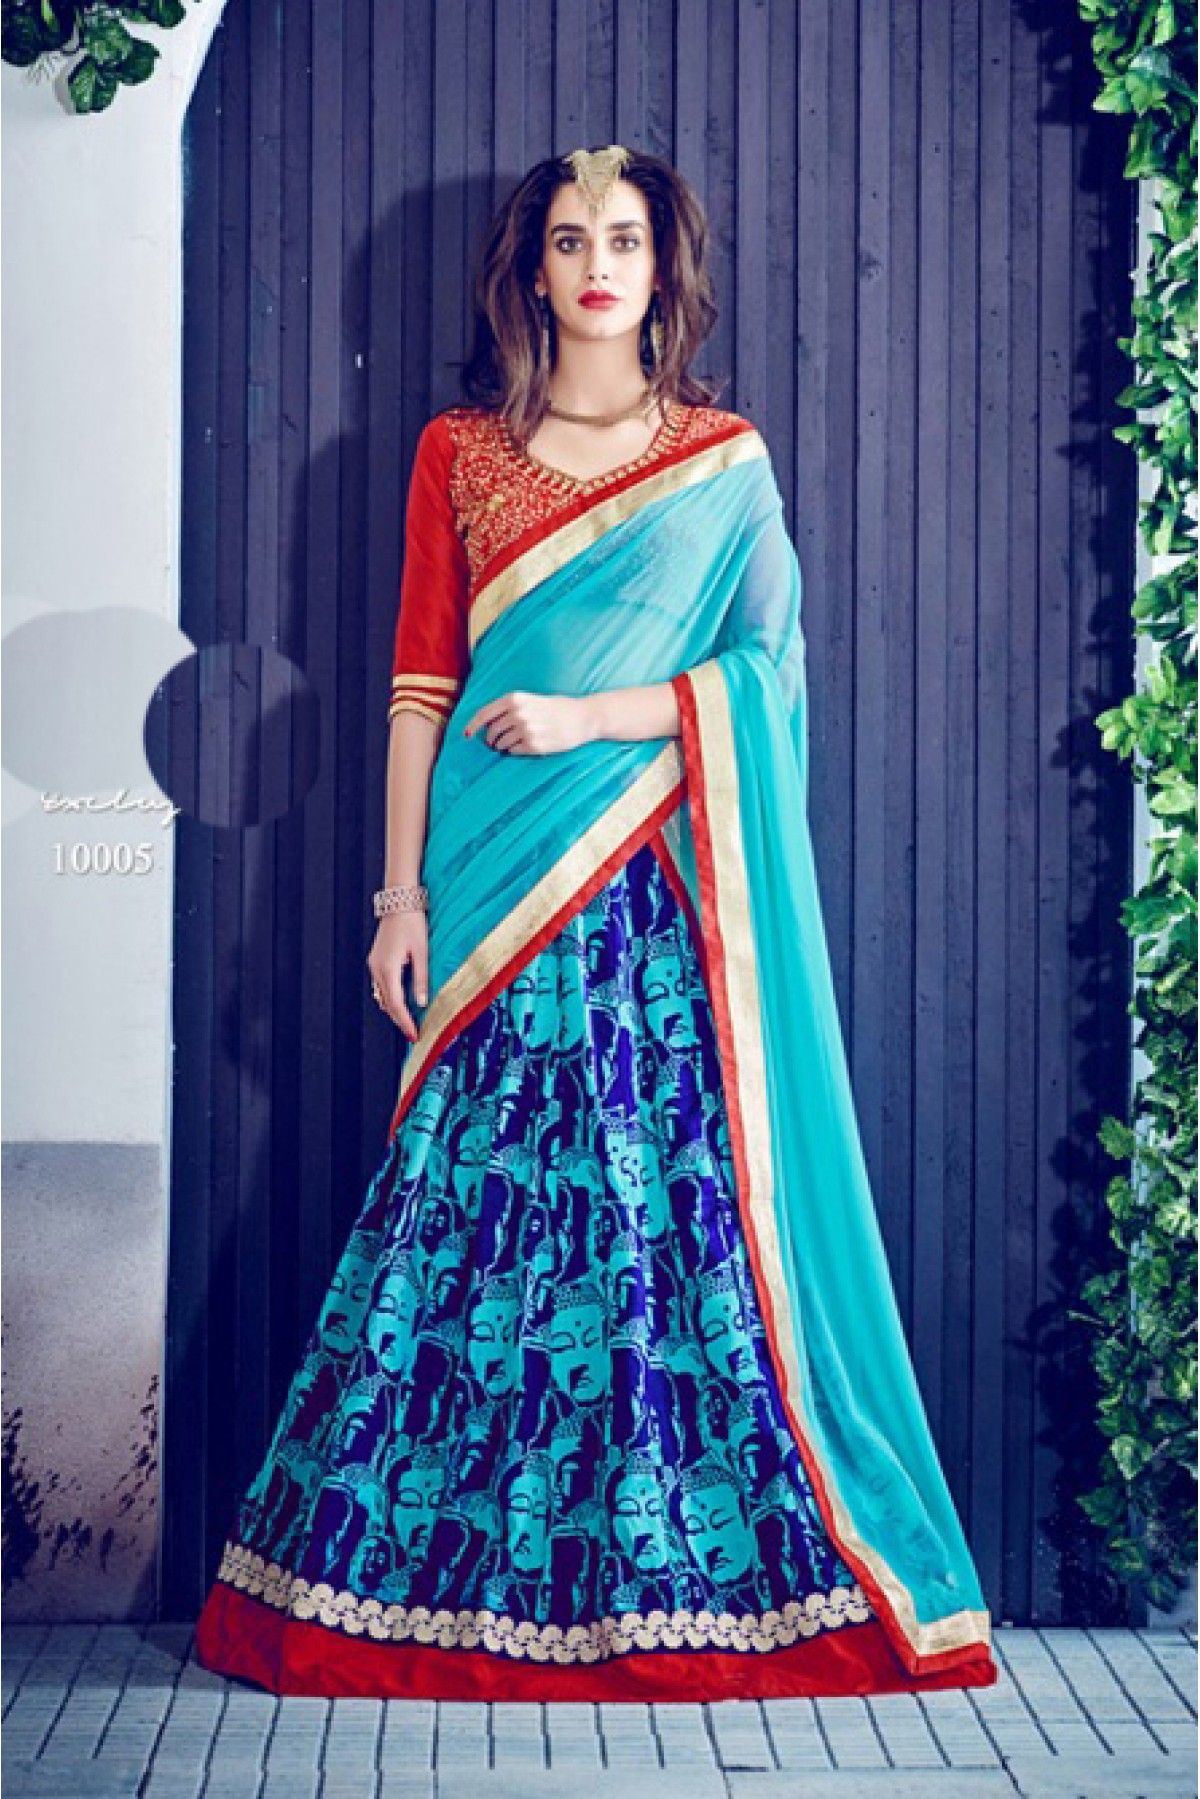 064bd7c682 Blue Colour Banglori Silk Fabric A Line Flower Printed Lehenga Choli Comes  With Matching Blouse and Dupatta. This Lehenga Choli Is Crafted With Lace  Work ...